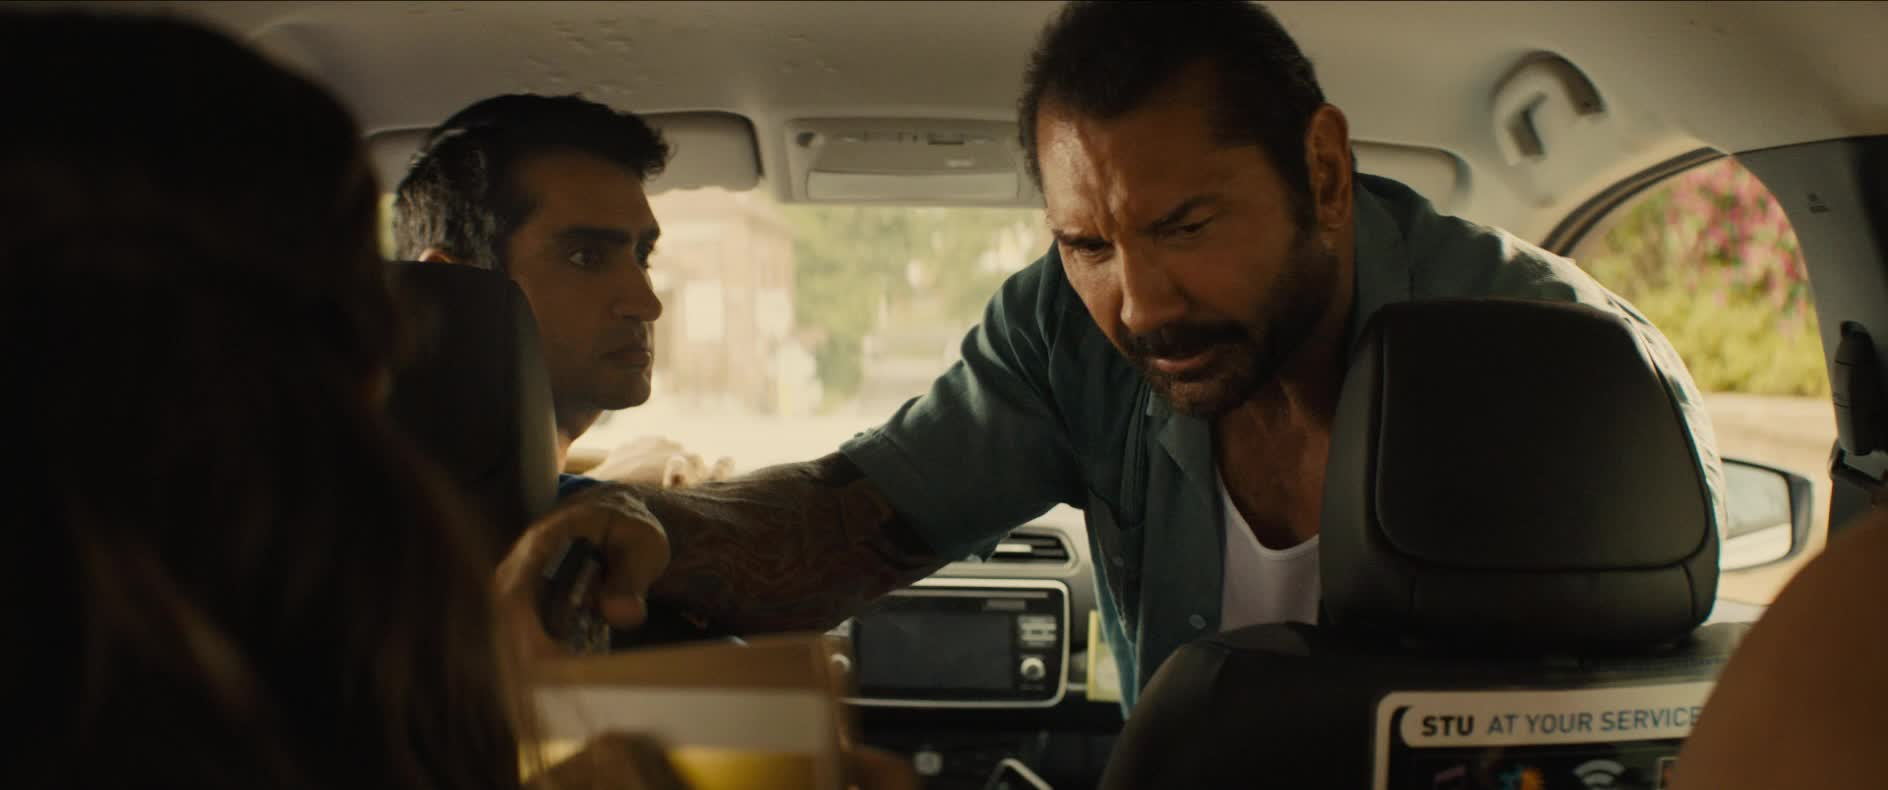 dave bautista, get out, gtfo, stuber, stuber movie, Dave Bautista Get Out GIFs